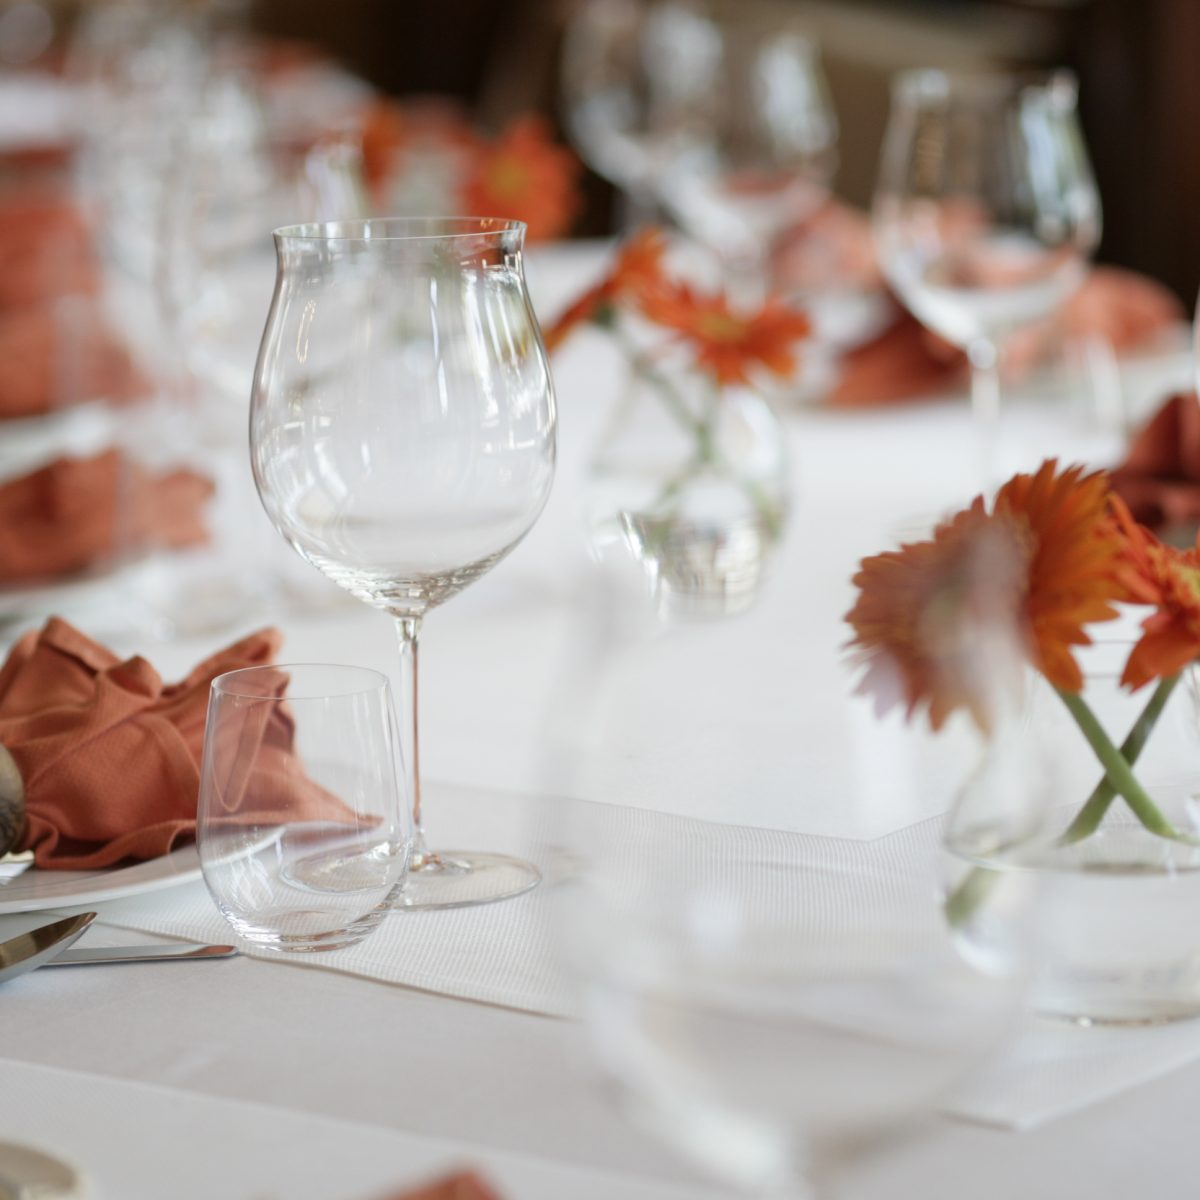 Table set with crystal, china and silver, with orange napkins and orange flowers